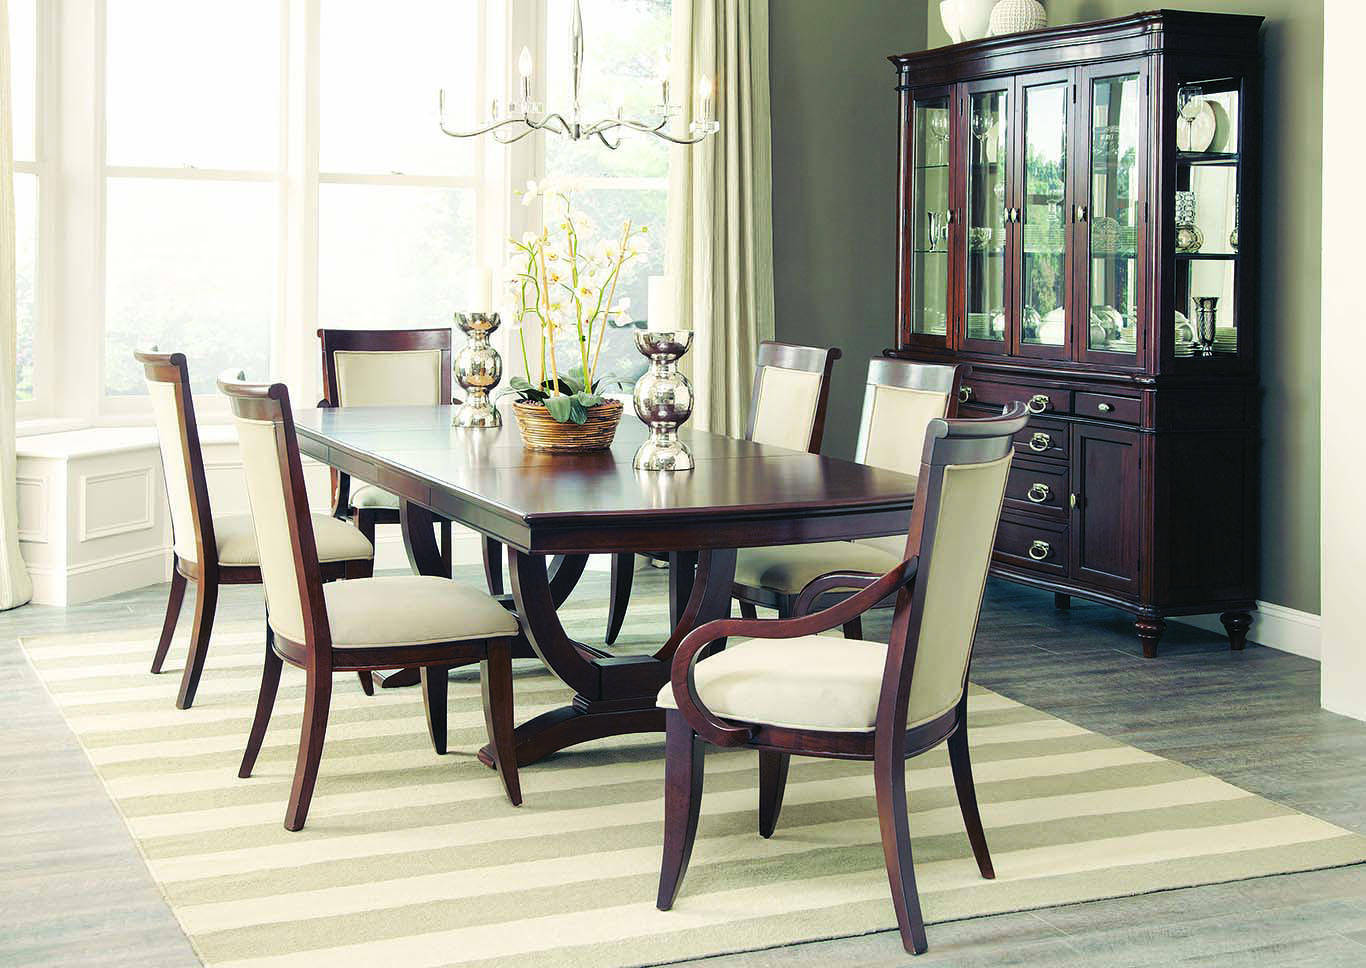 dining room walnut rectangular extension dining table w 4 side